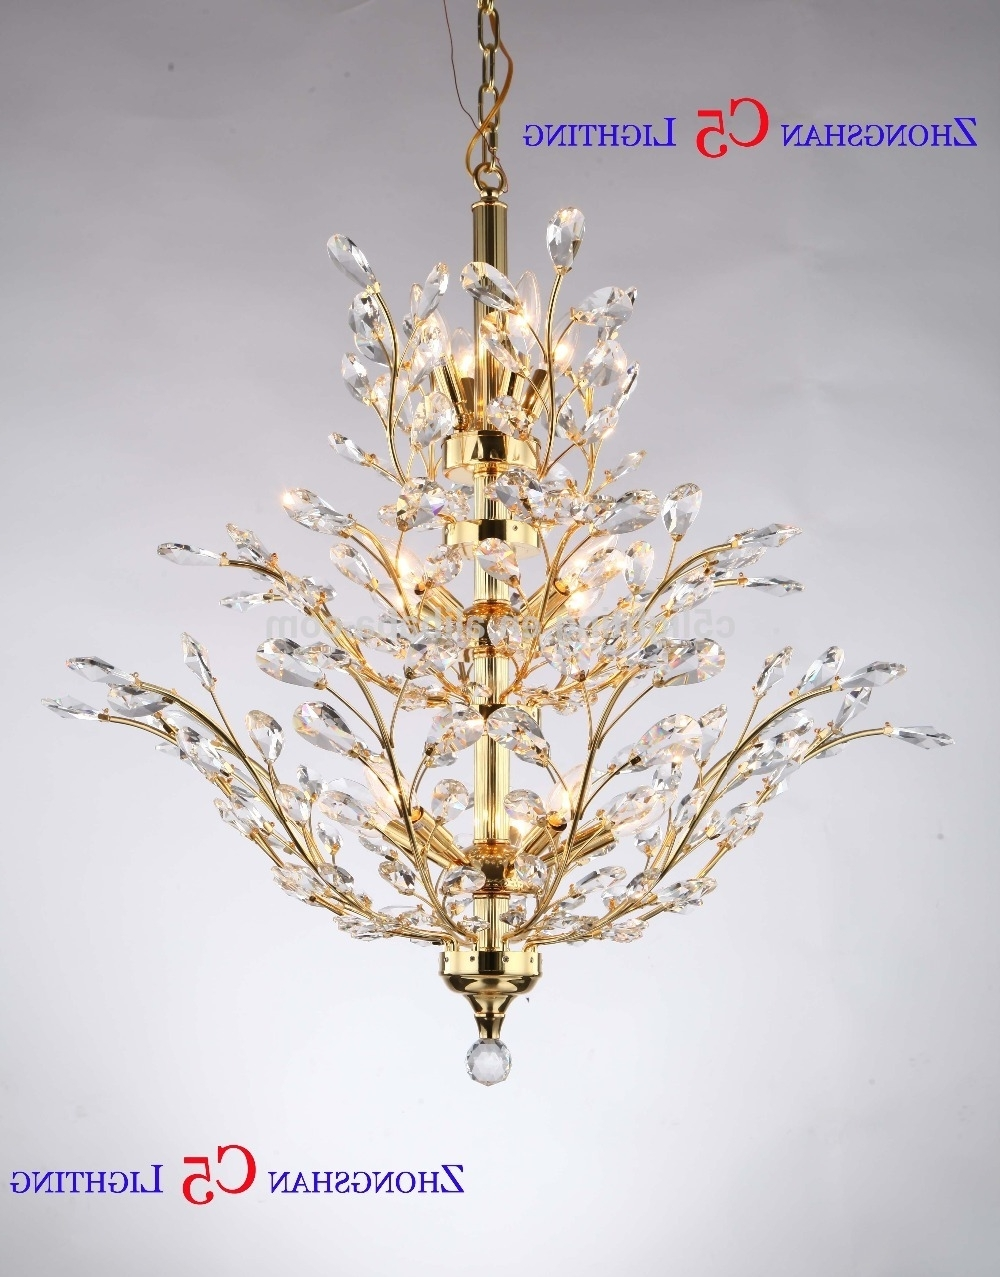 Current Crystal Chandeliers Made In China, Crystal Chandeliers Made In China Inside Chinese Chandeliers (View 10 of 20)